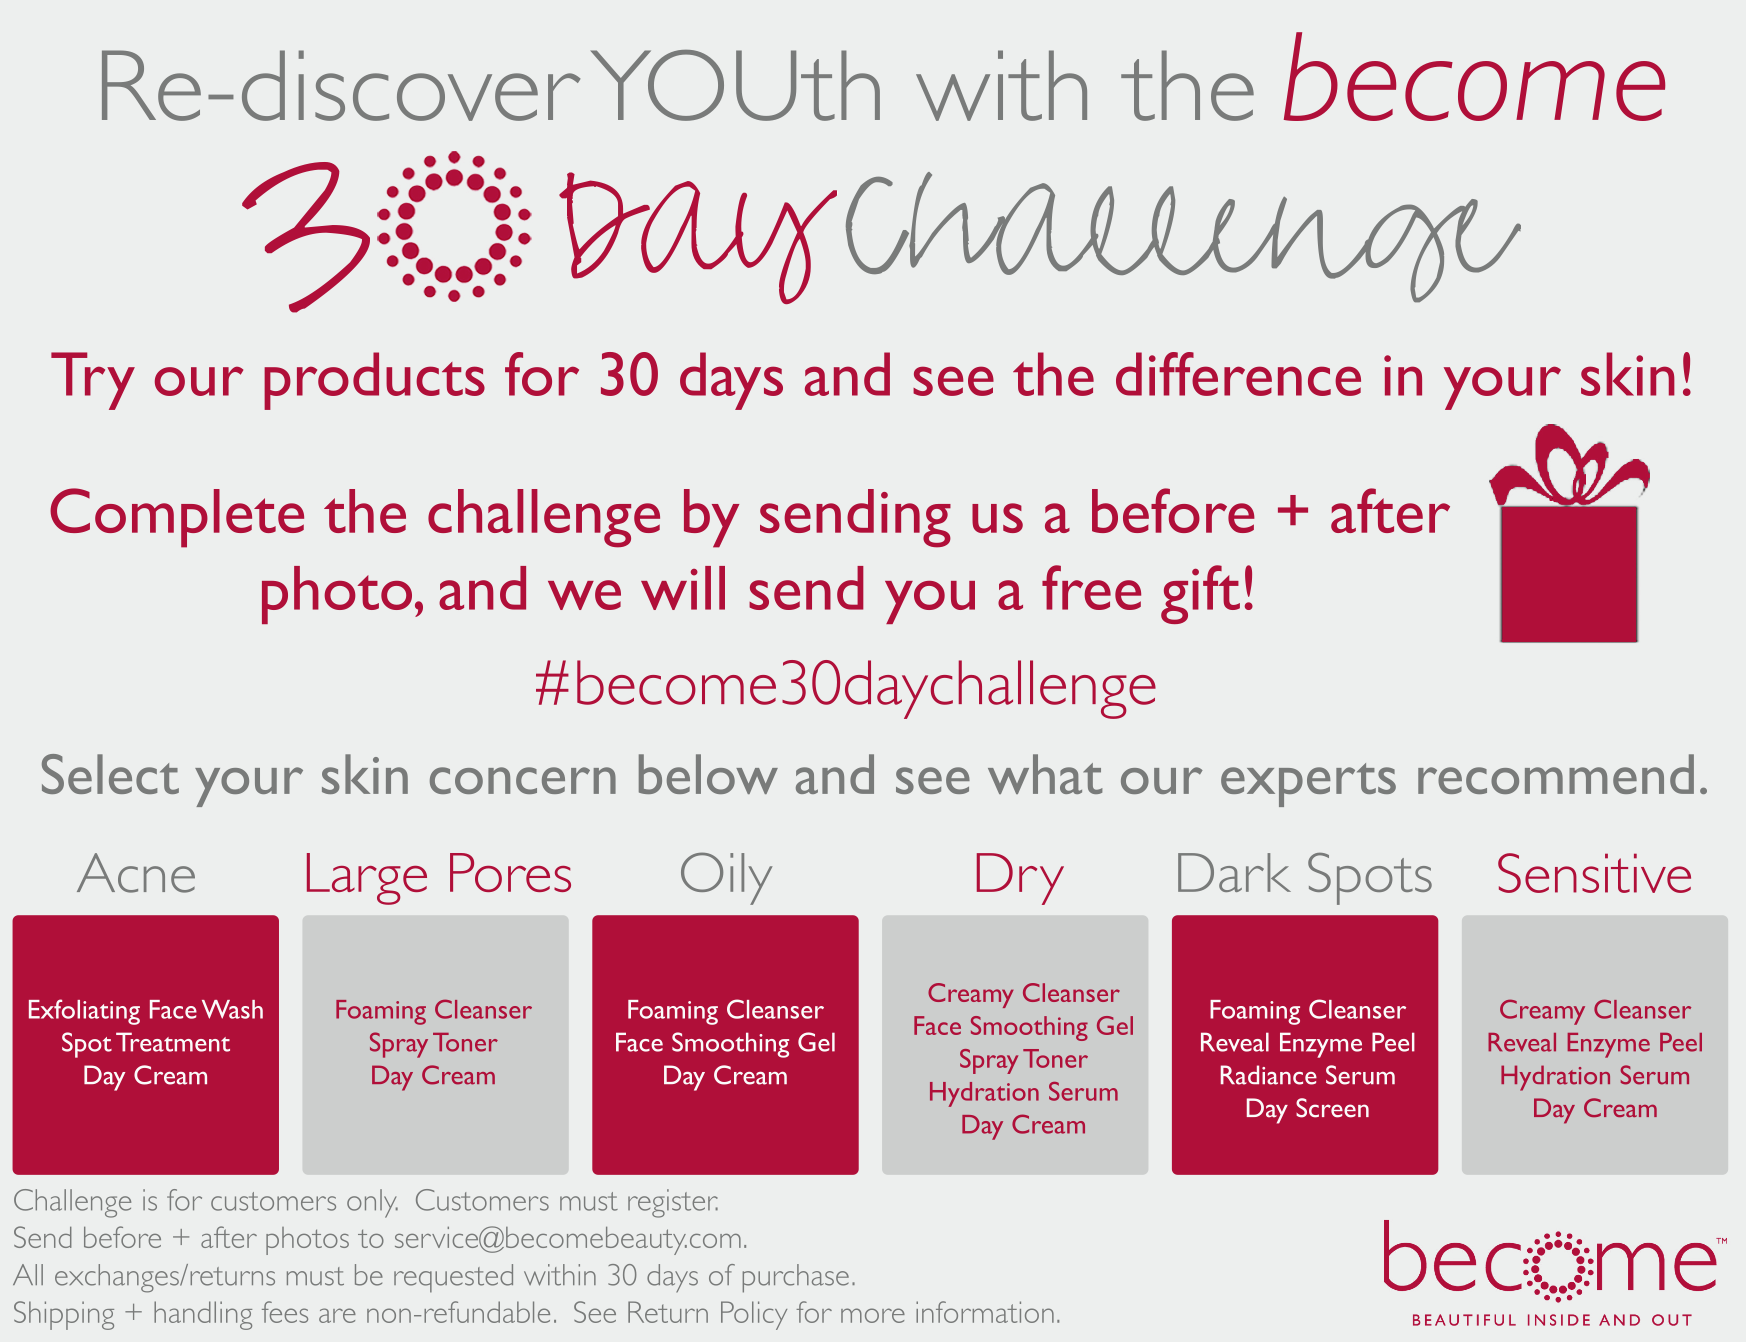 Re discover youth with the become 30 day challenge